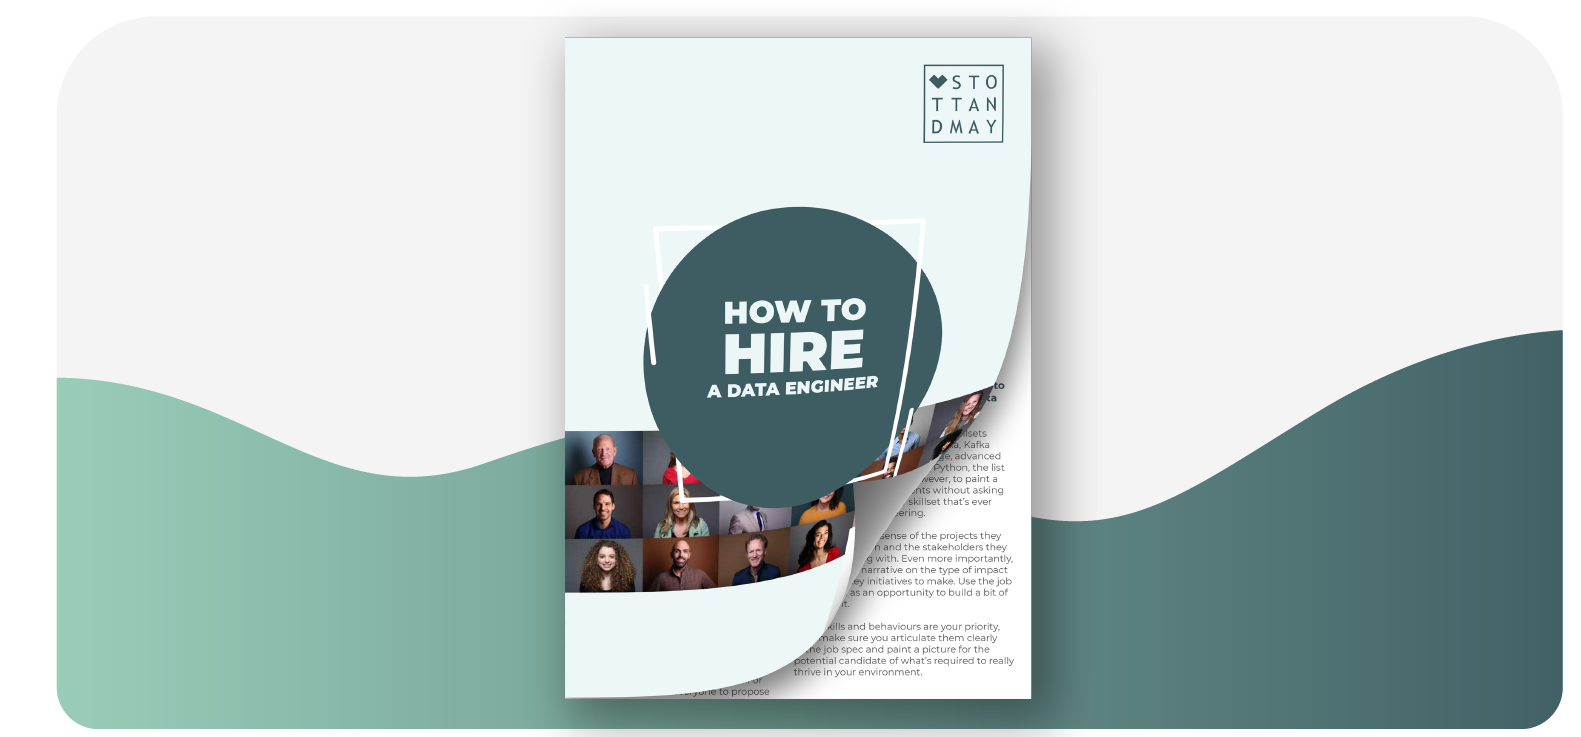 Stott and May How to Hire a Data Engineer